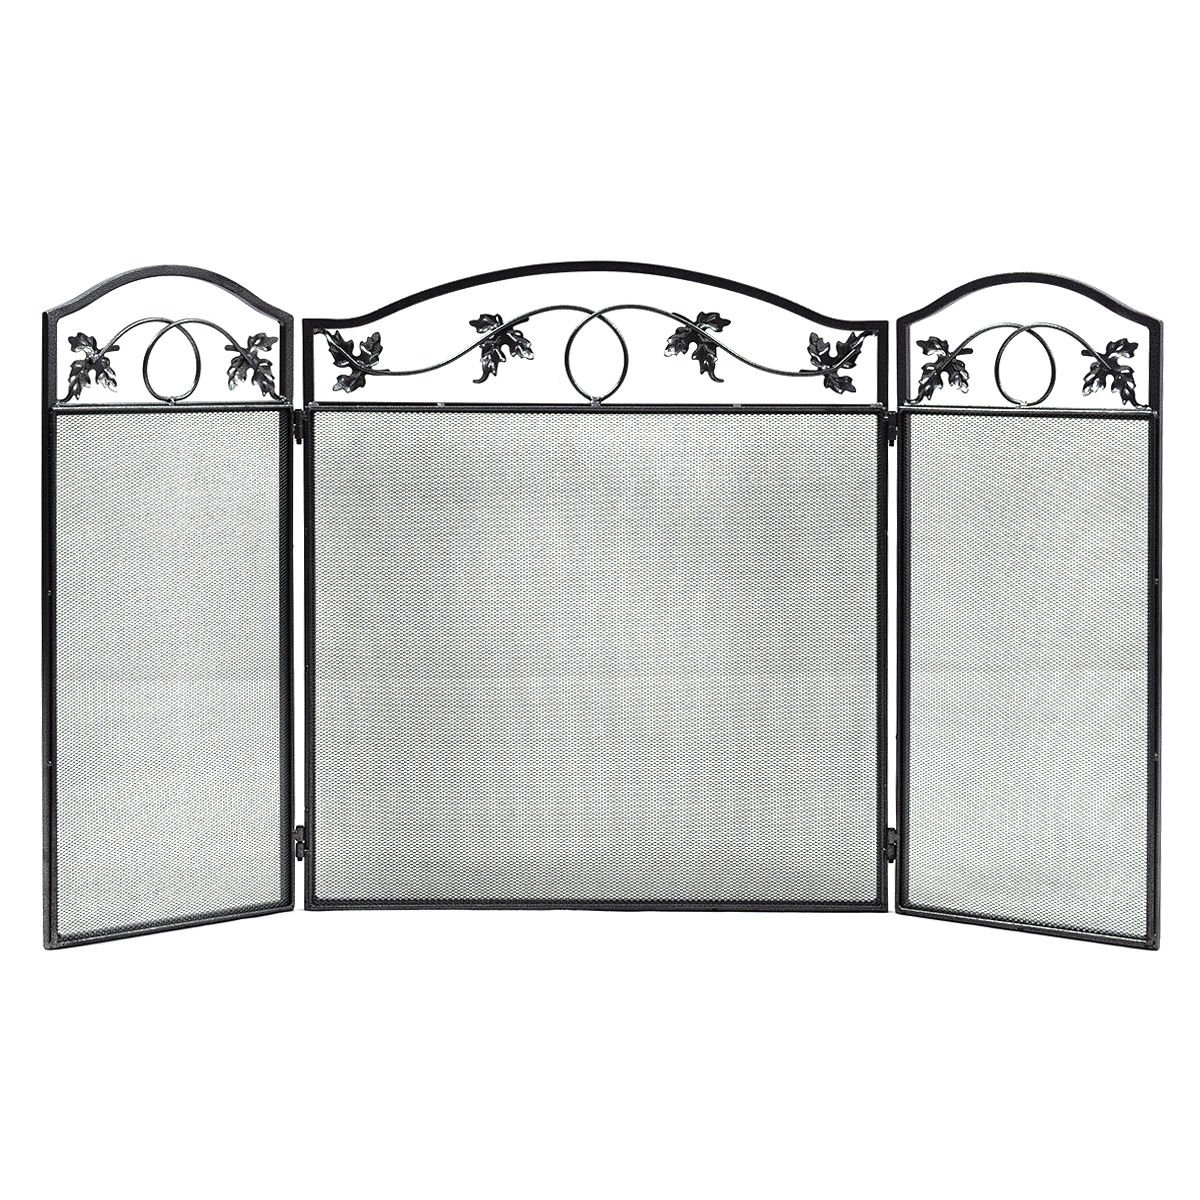 Folding steel fireplace screen doors 3 panel heavy duty home furni decor fire new This elegant fireplace screen is giving a feeling of welcoming home.For safe environment for your child, dog and cat.